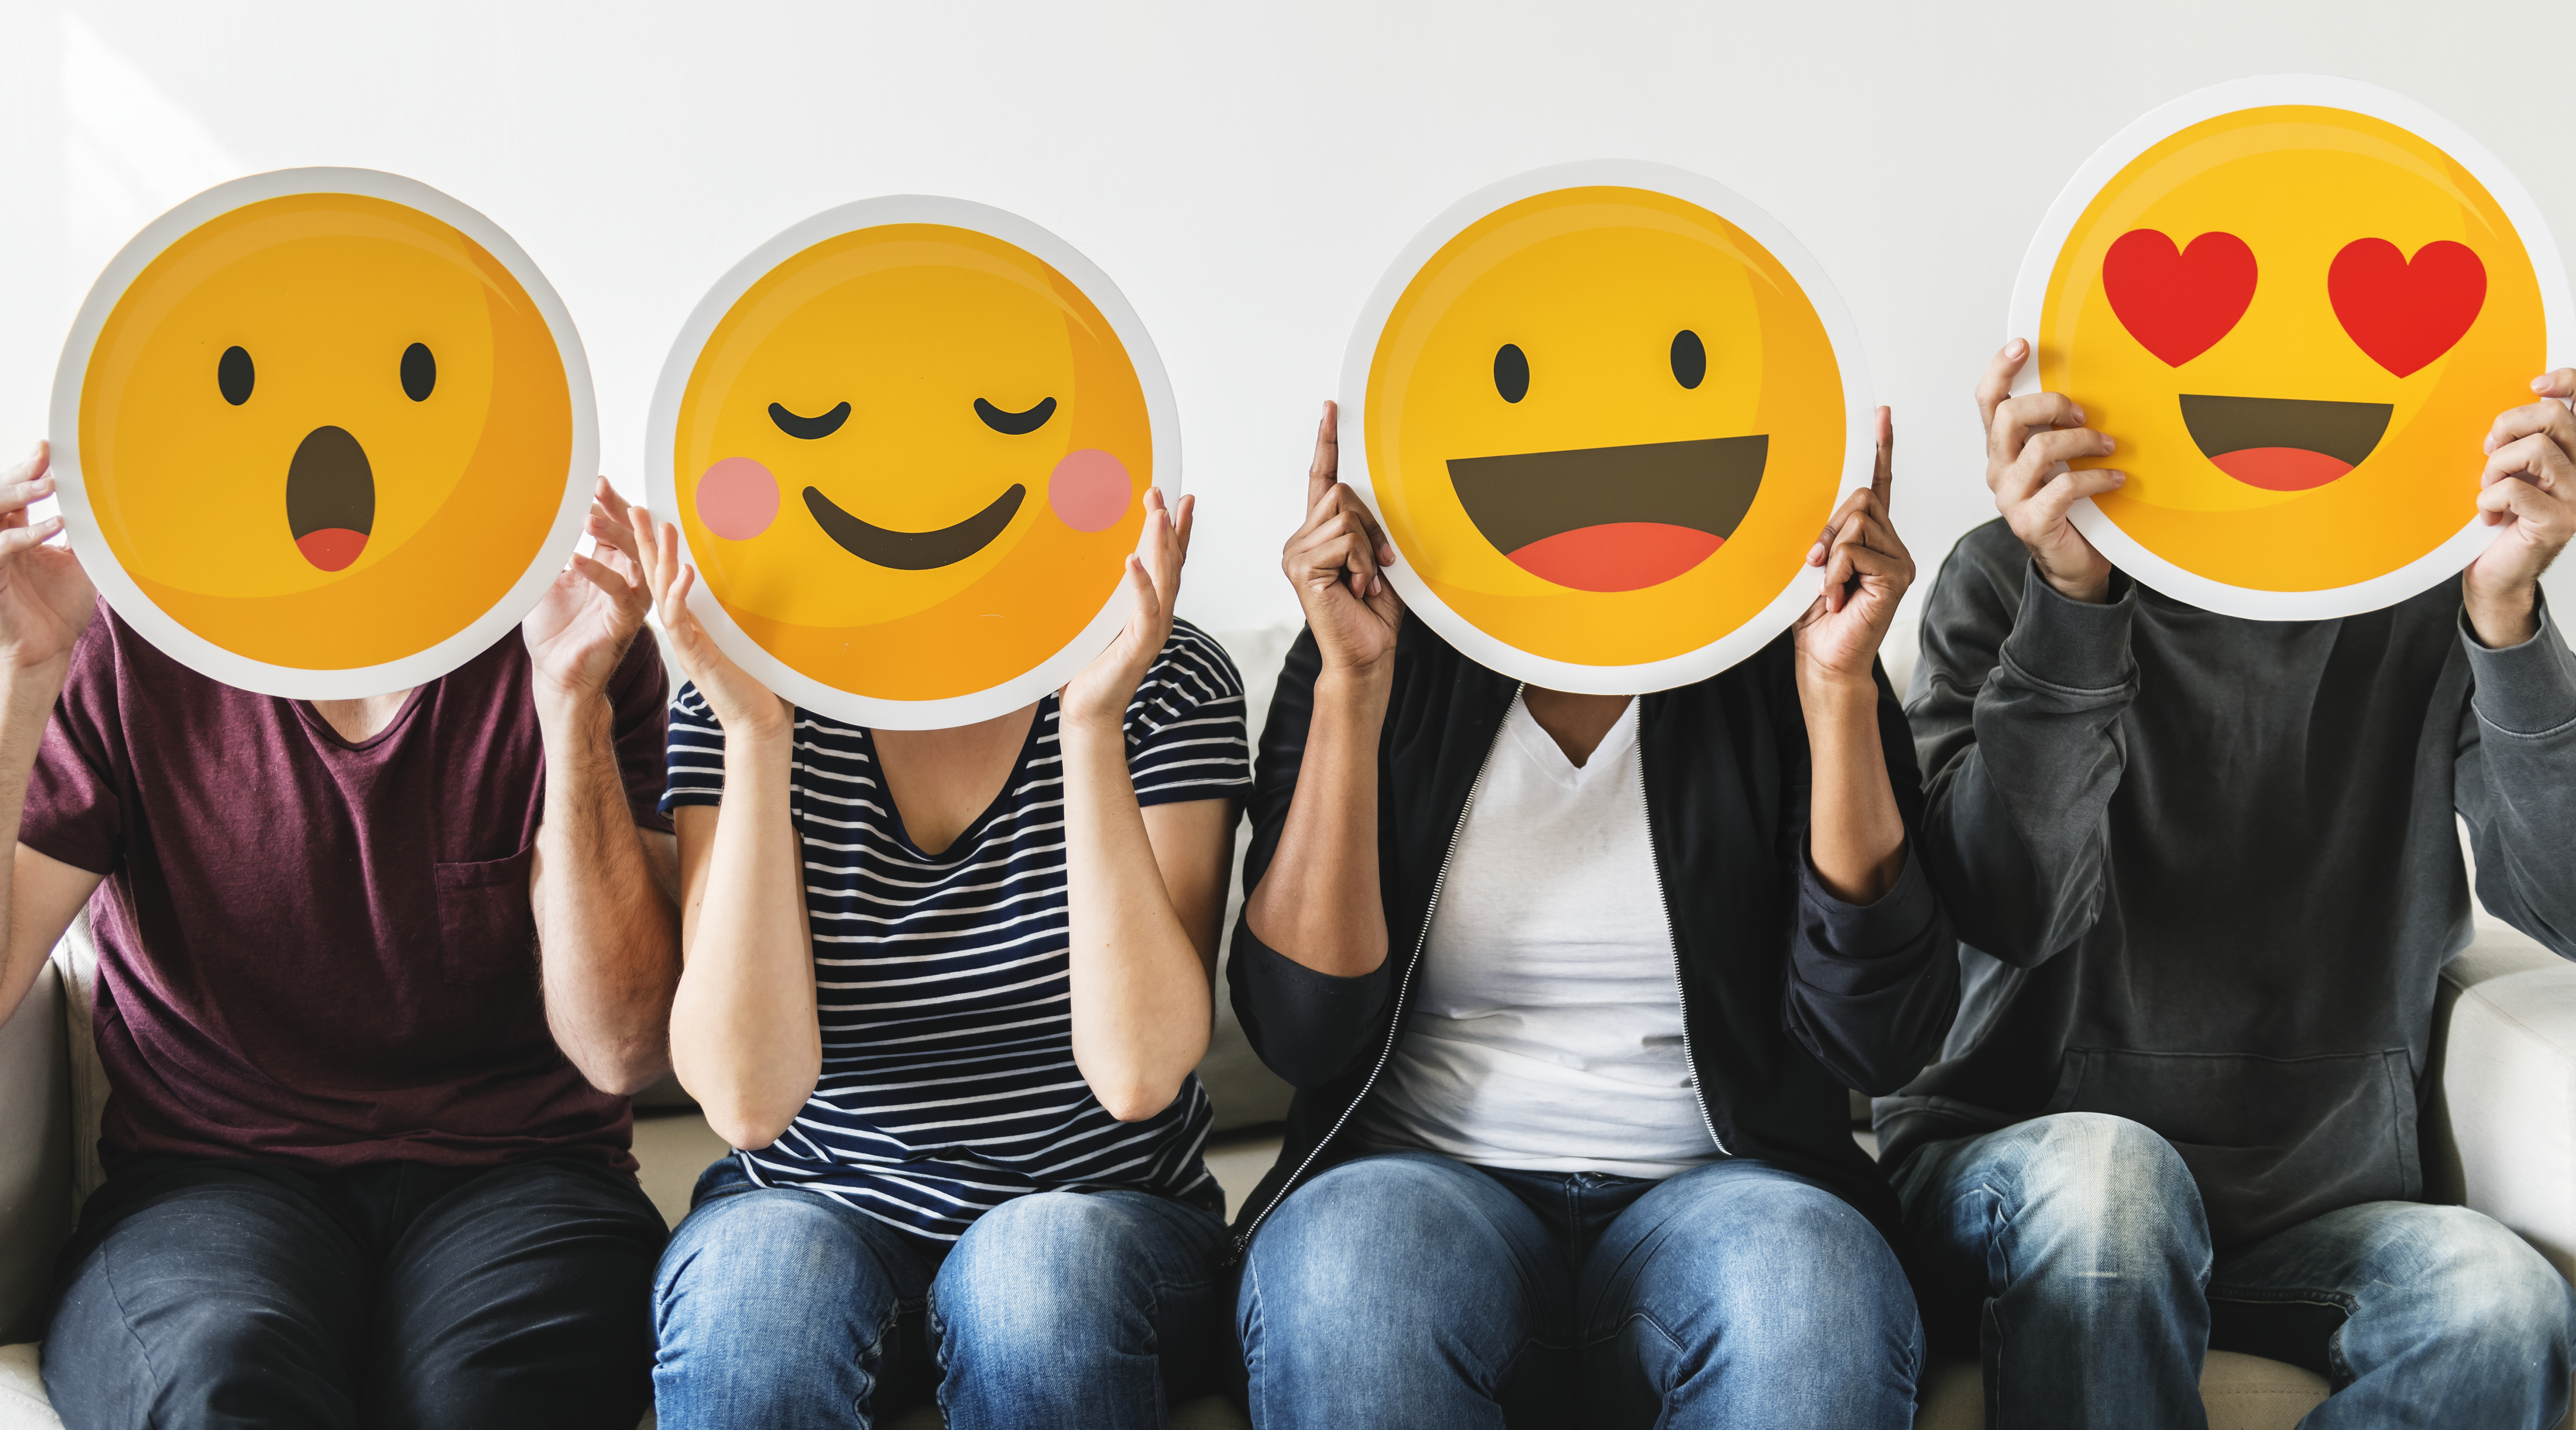 diverse-people-holding-emoticon